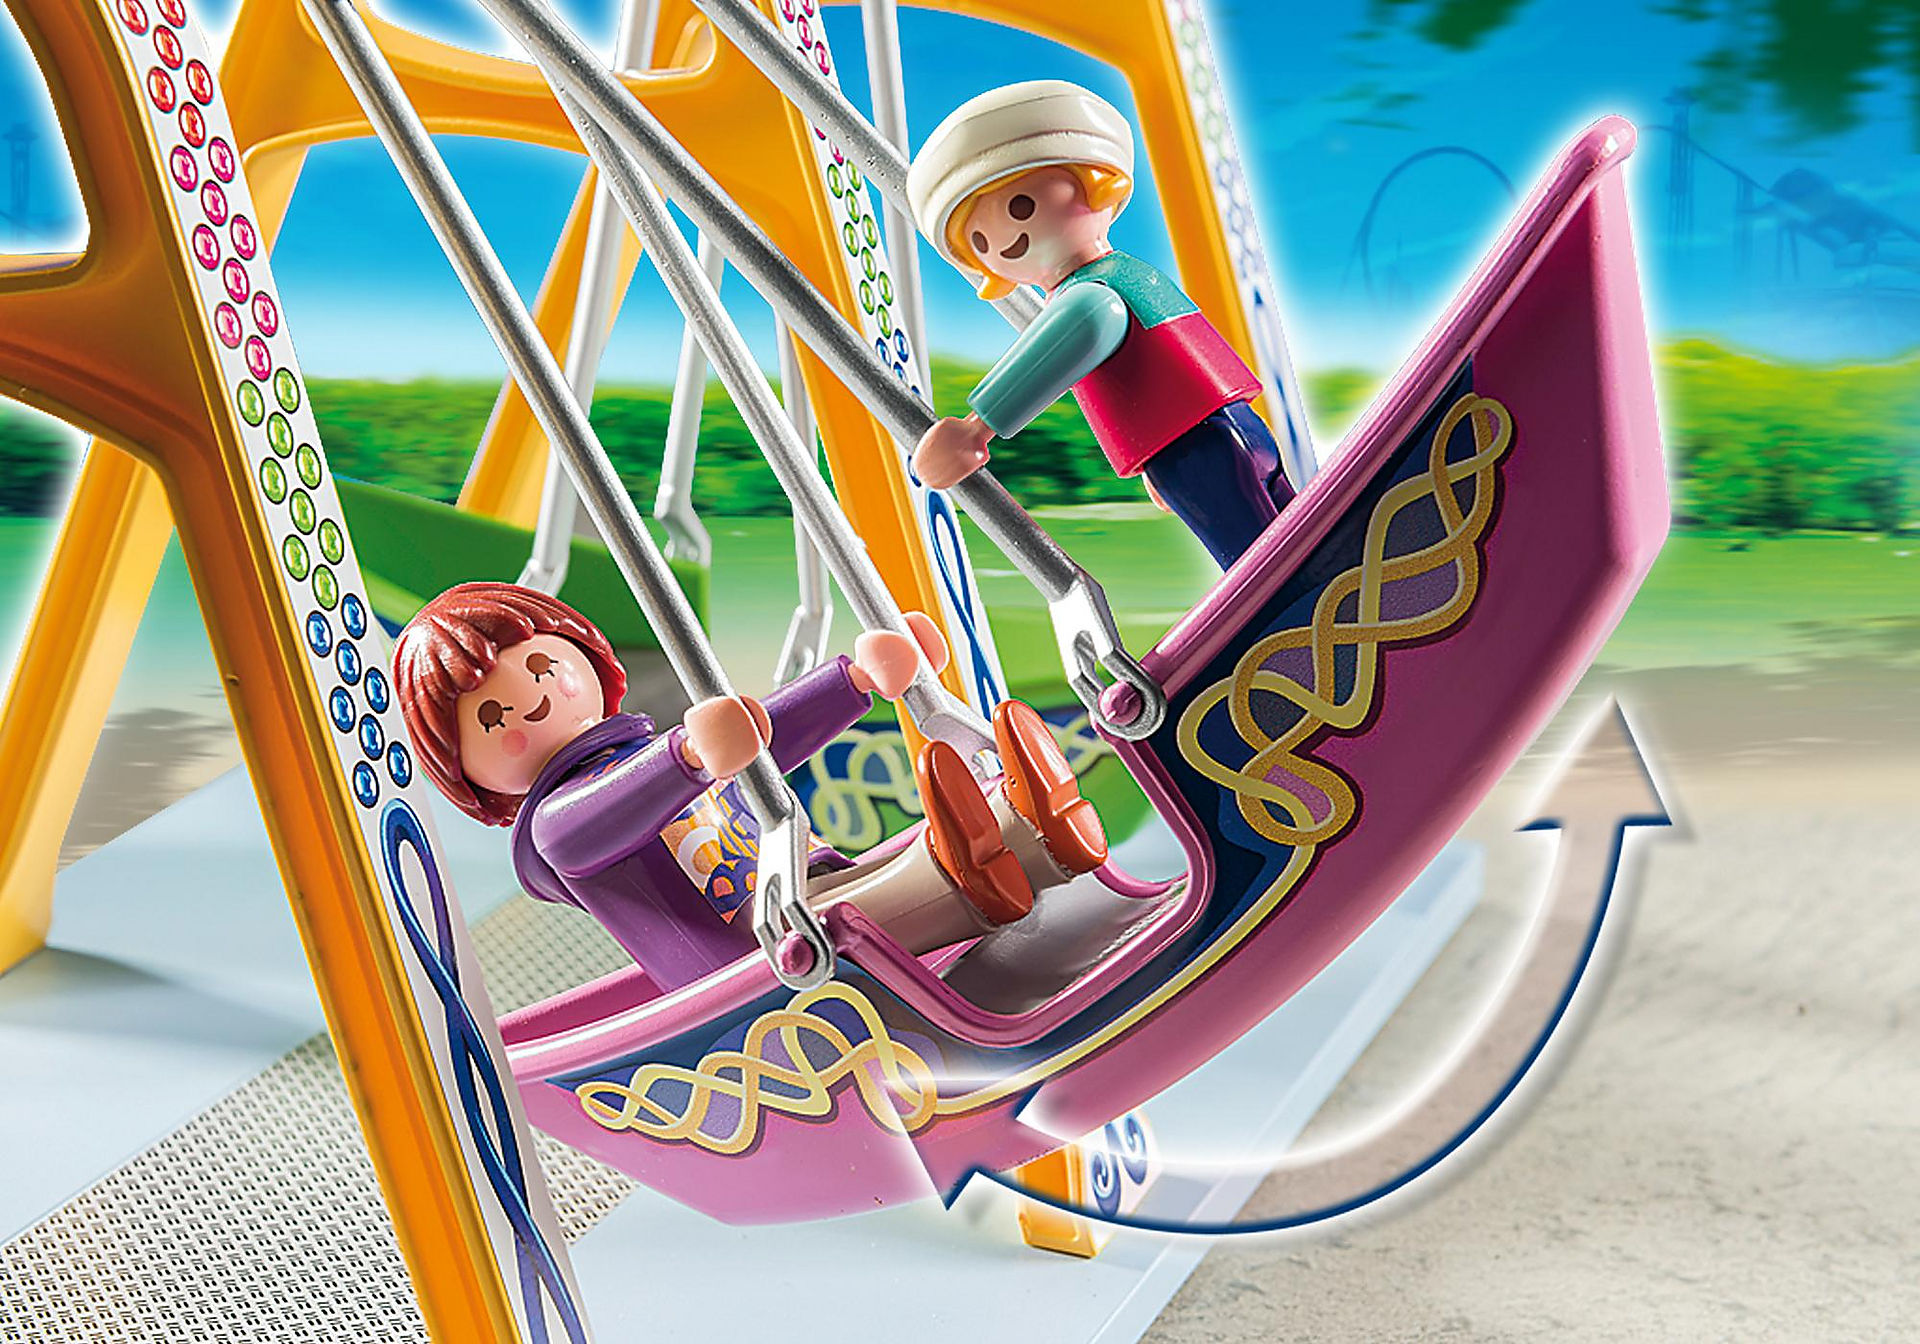 http://media.playmobil.com/i/playmobil/5553_product_extra1/Boat Swings